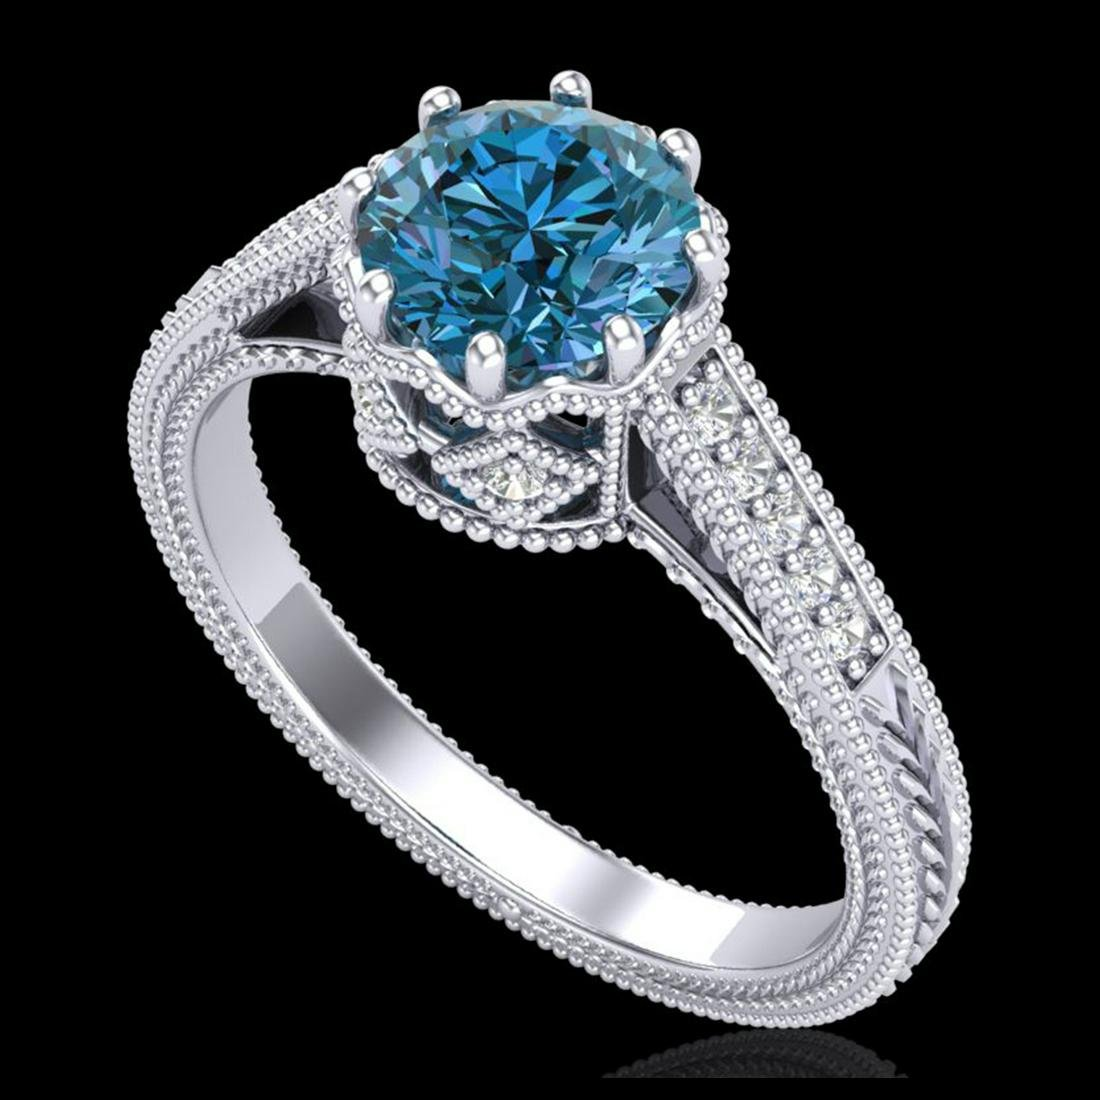 1.25 ctw Fancy Intense Blue Diamond Art Deco Ring 18K